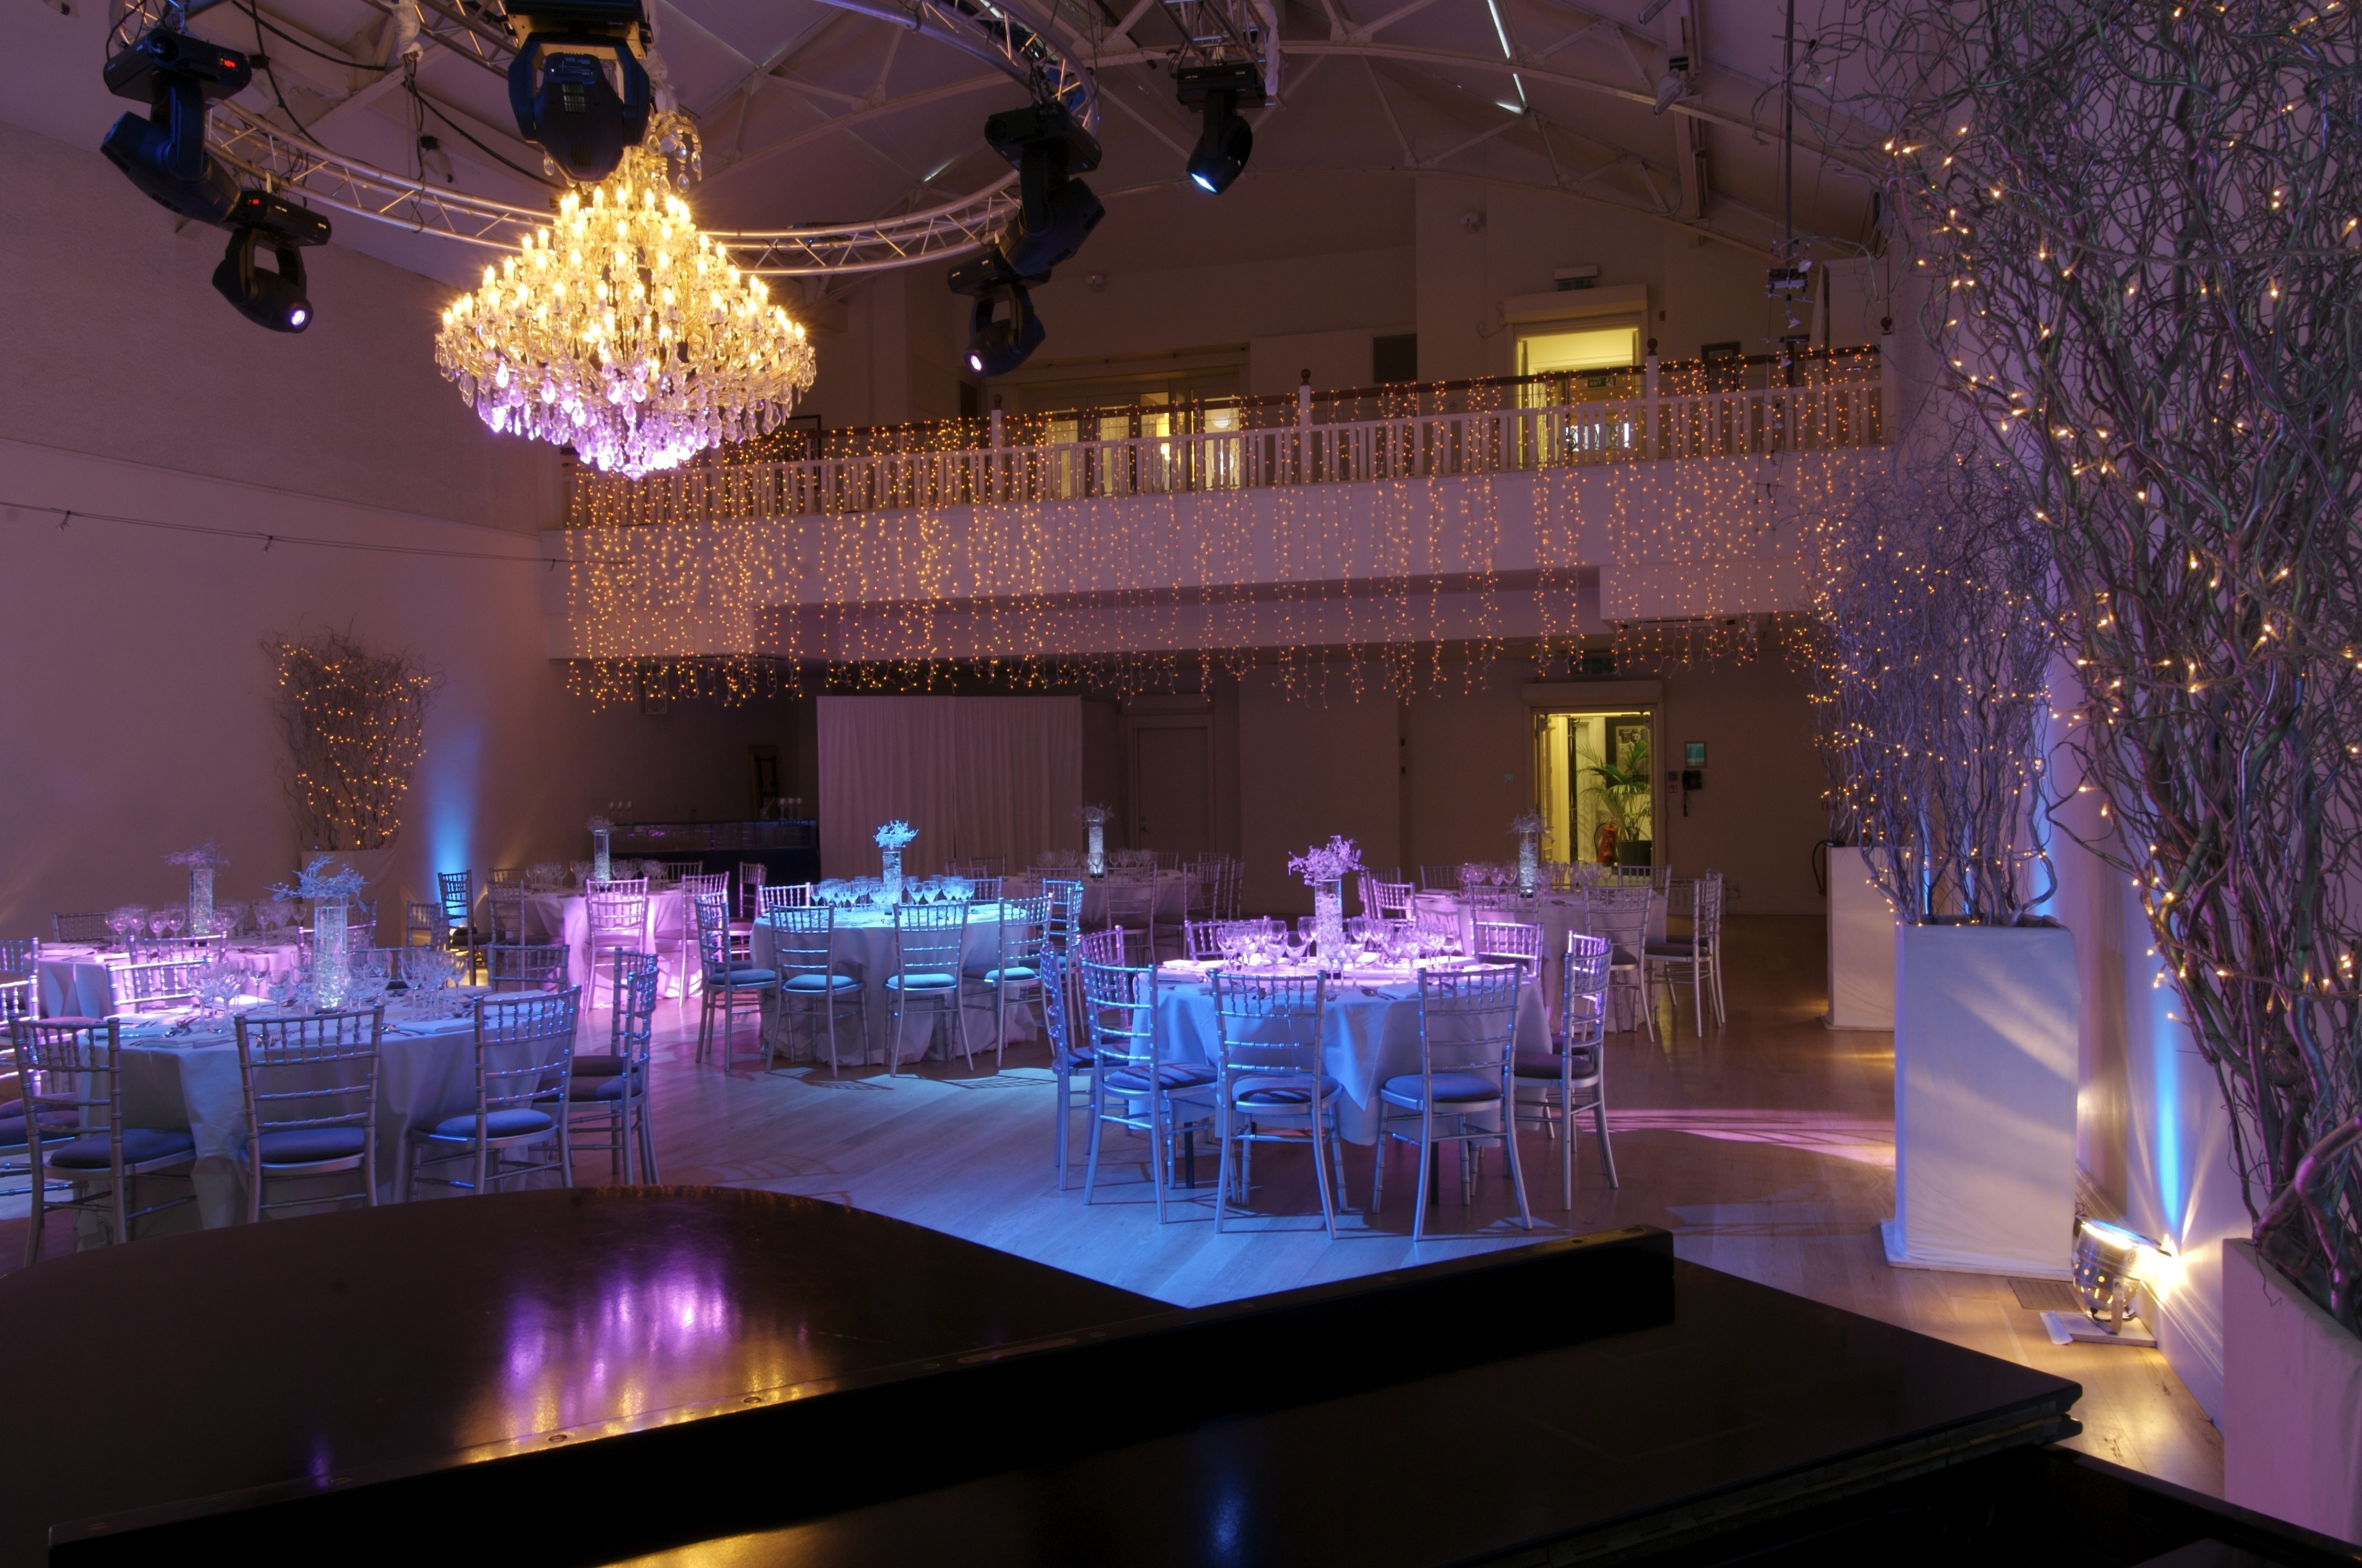 Great Hall at Marylebone Town House venue